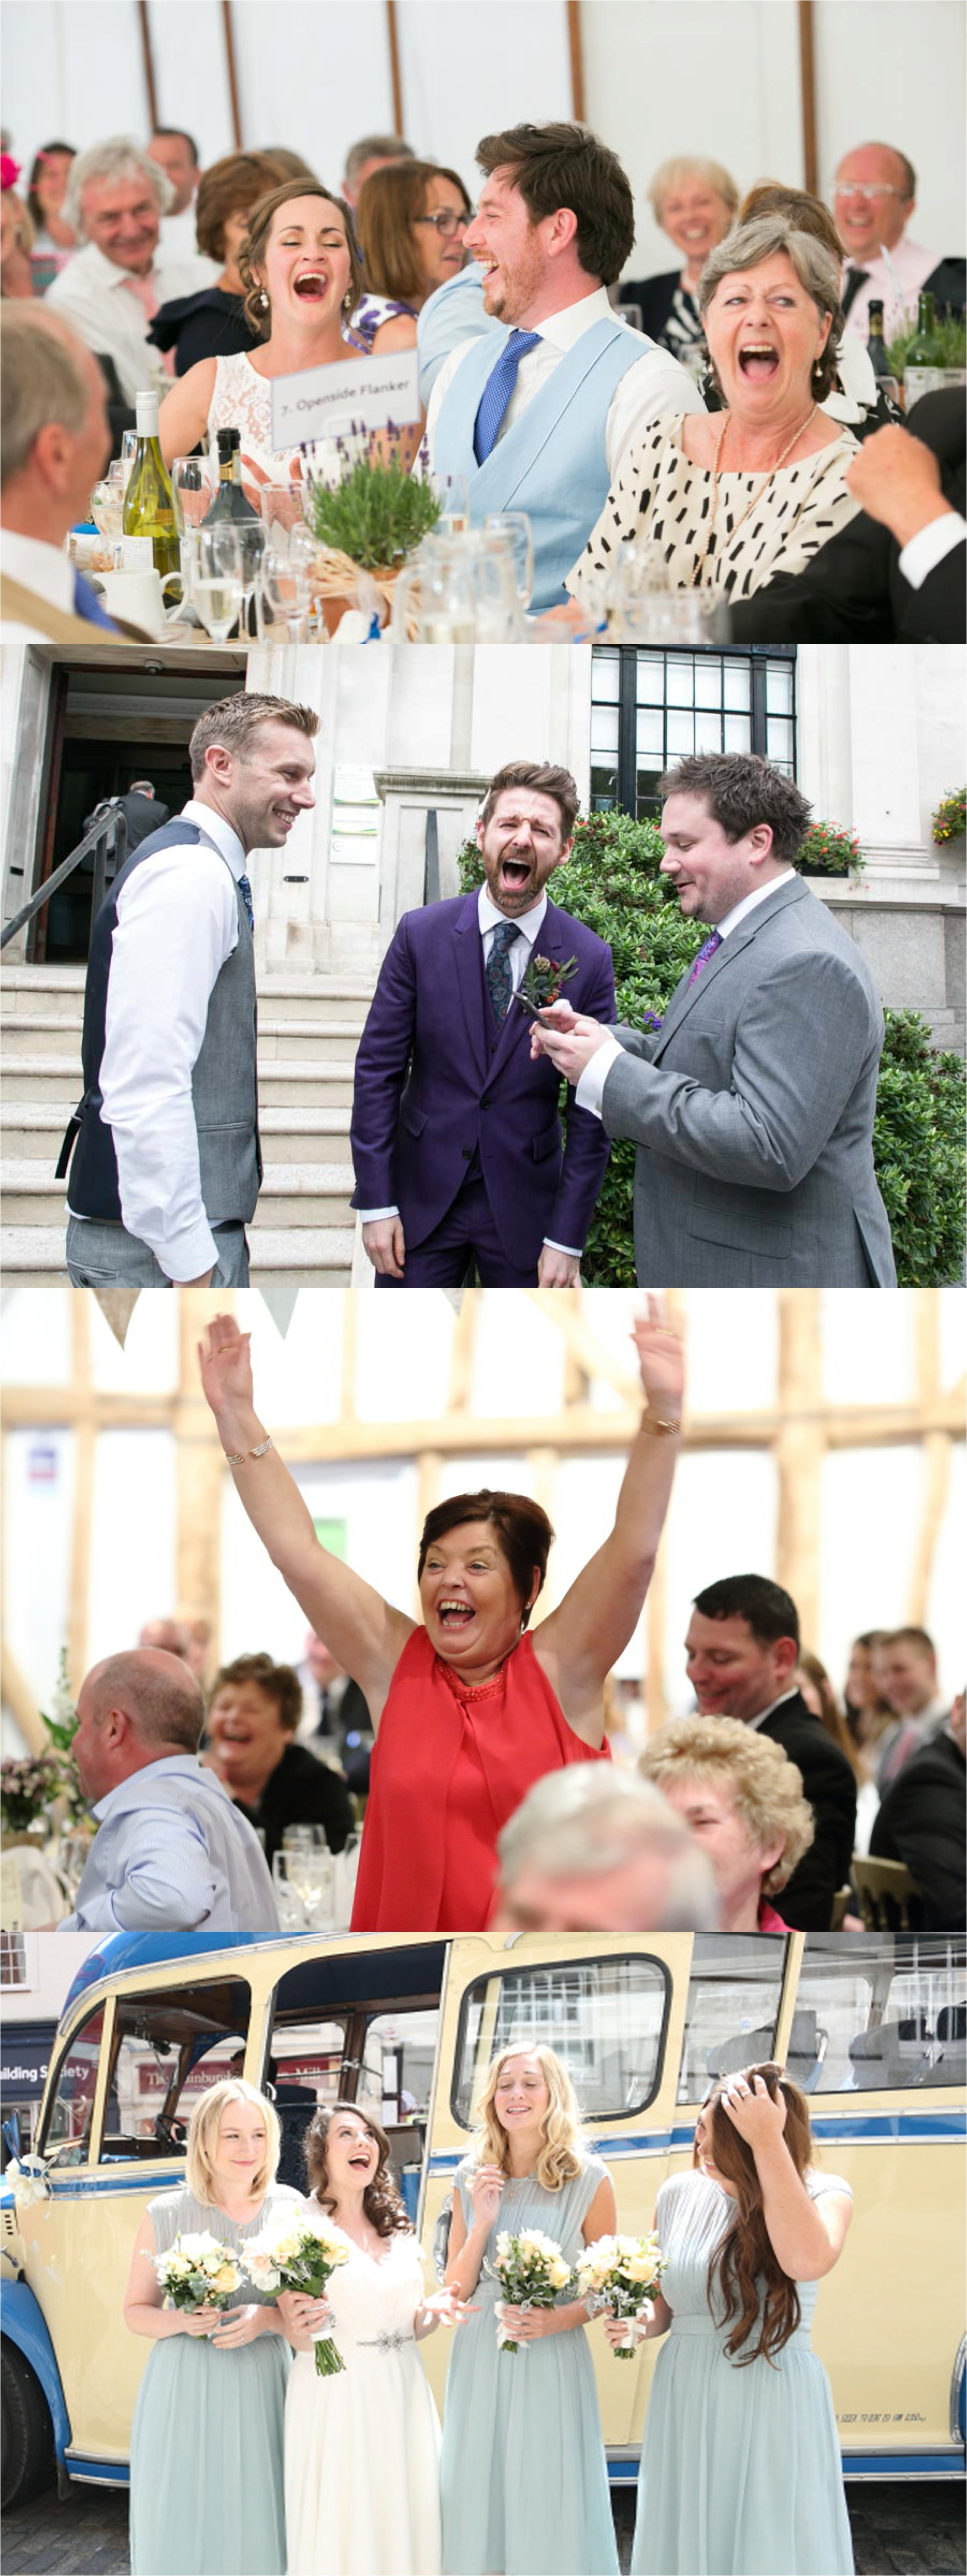 emotive wedding photography in cambridge and suffolk, laughing expressions captured